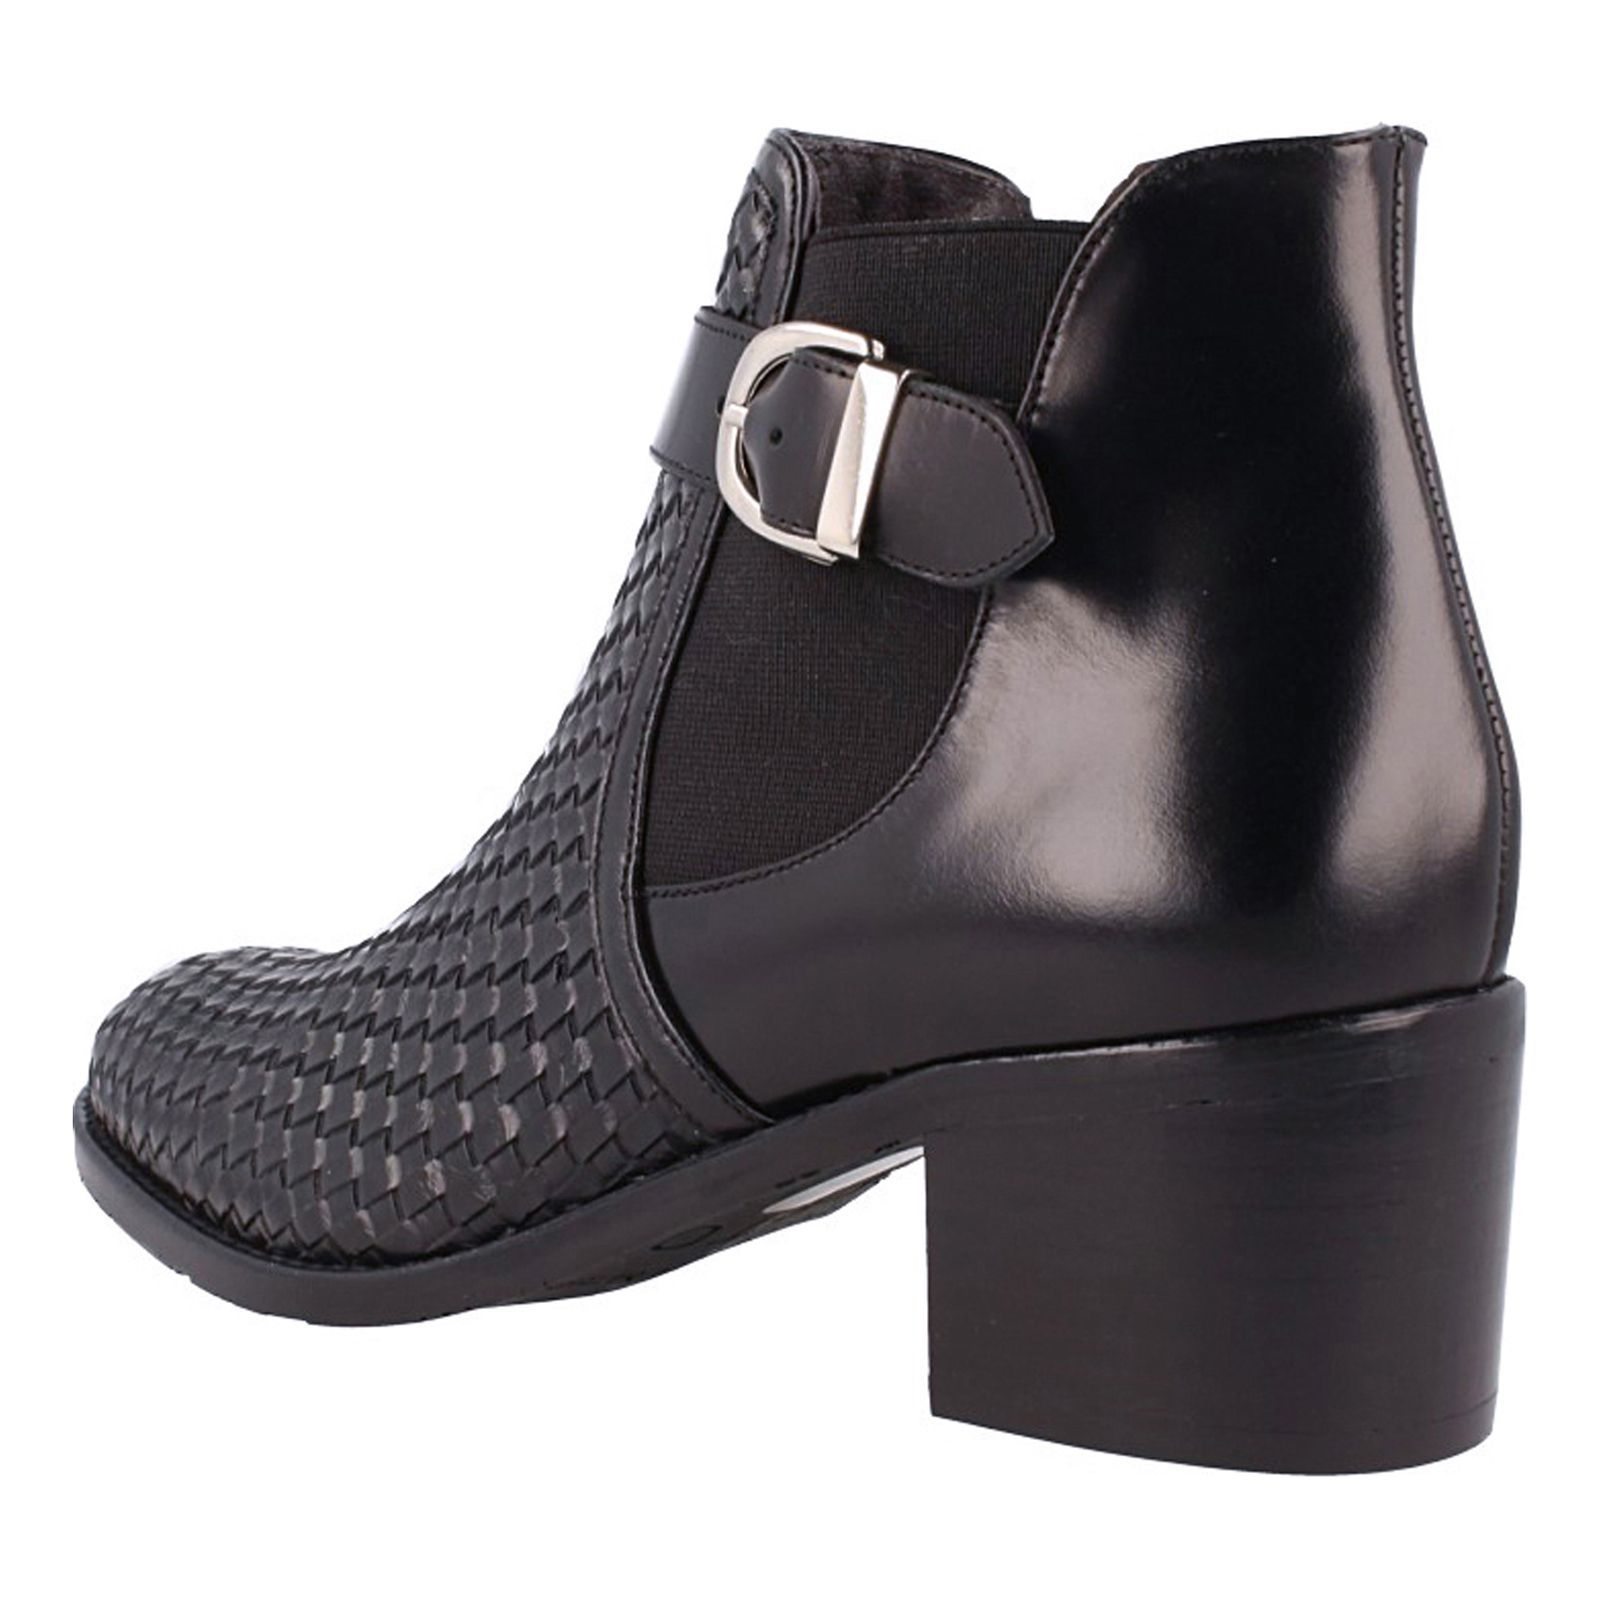 Roberto Botella Bottines en cuir - noir